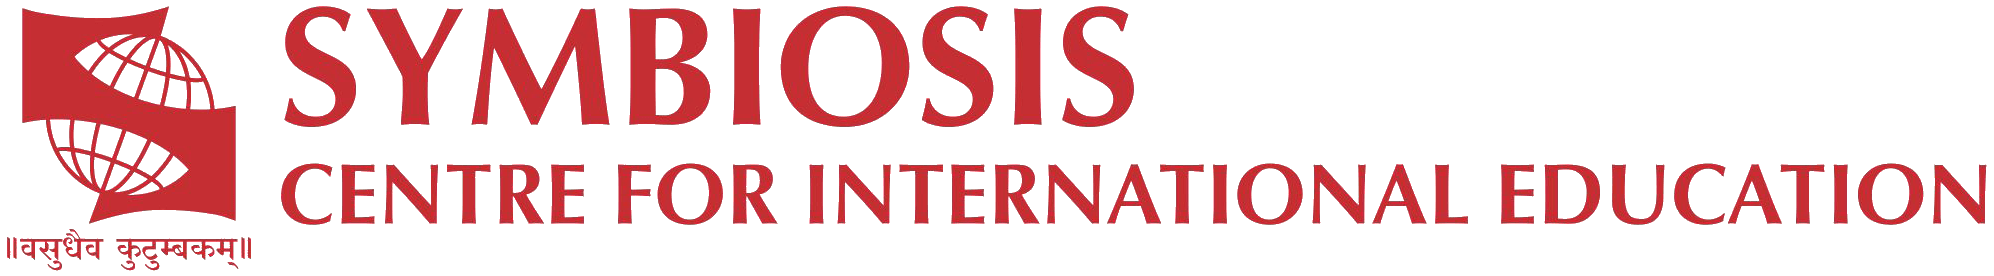 Symbiosis International University | Top International University in India